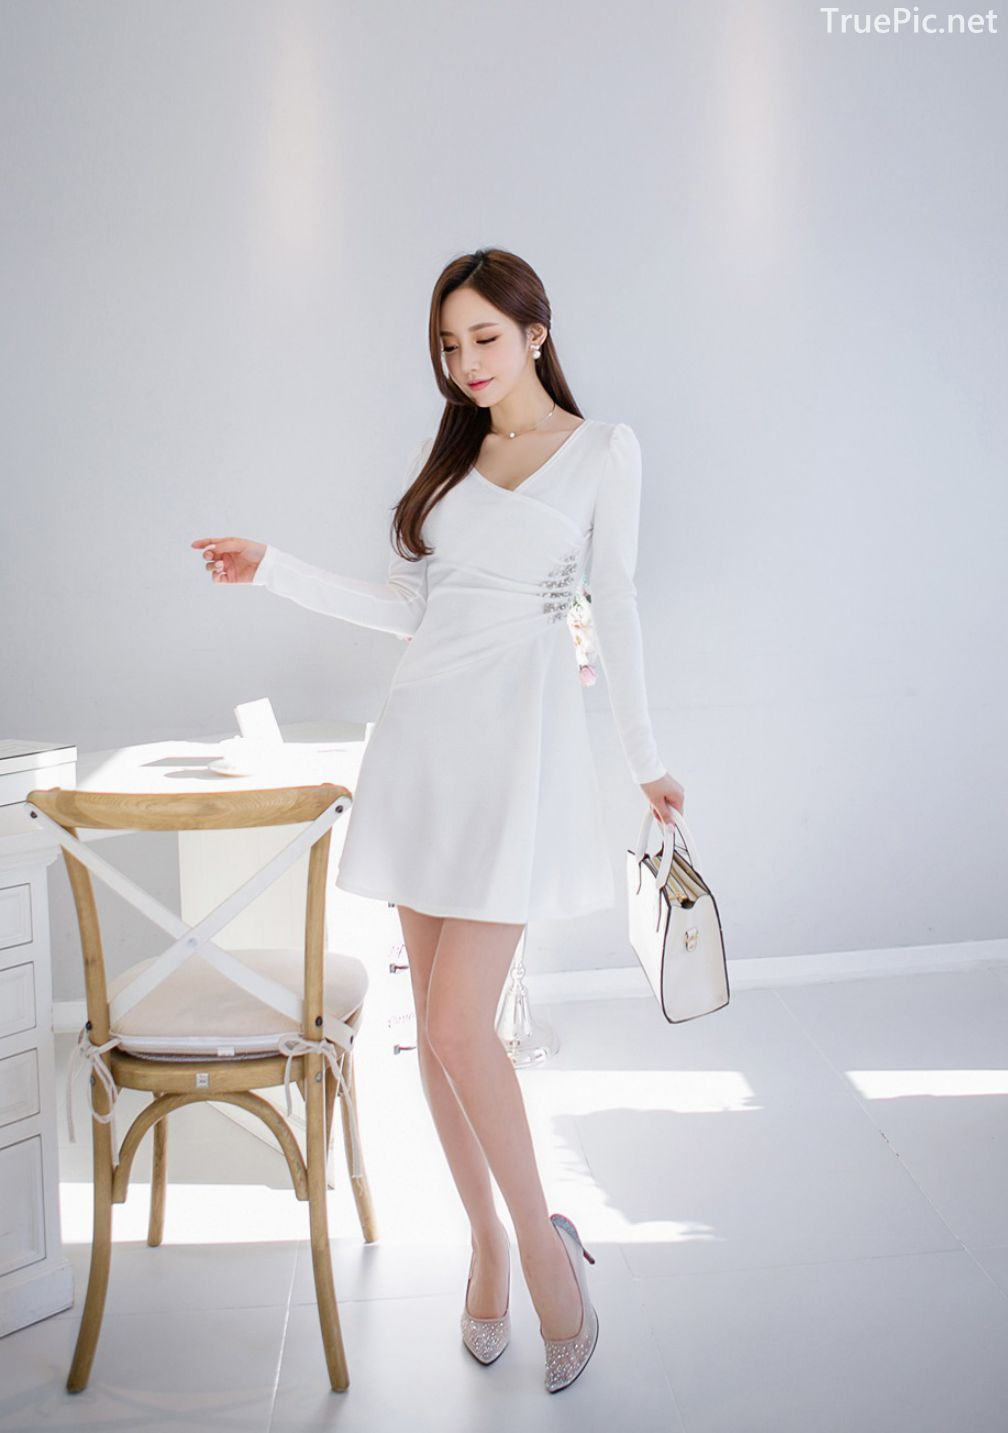 Son-Yoon-Joo-beautiful-photos-Indoor-Photoshoot-Collection-Korean-Fashion-and-Model-TruePic.net- Picture 4